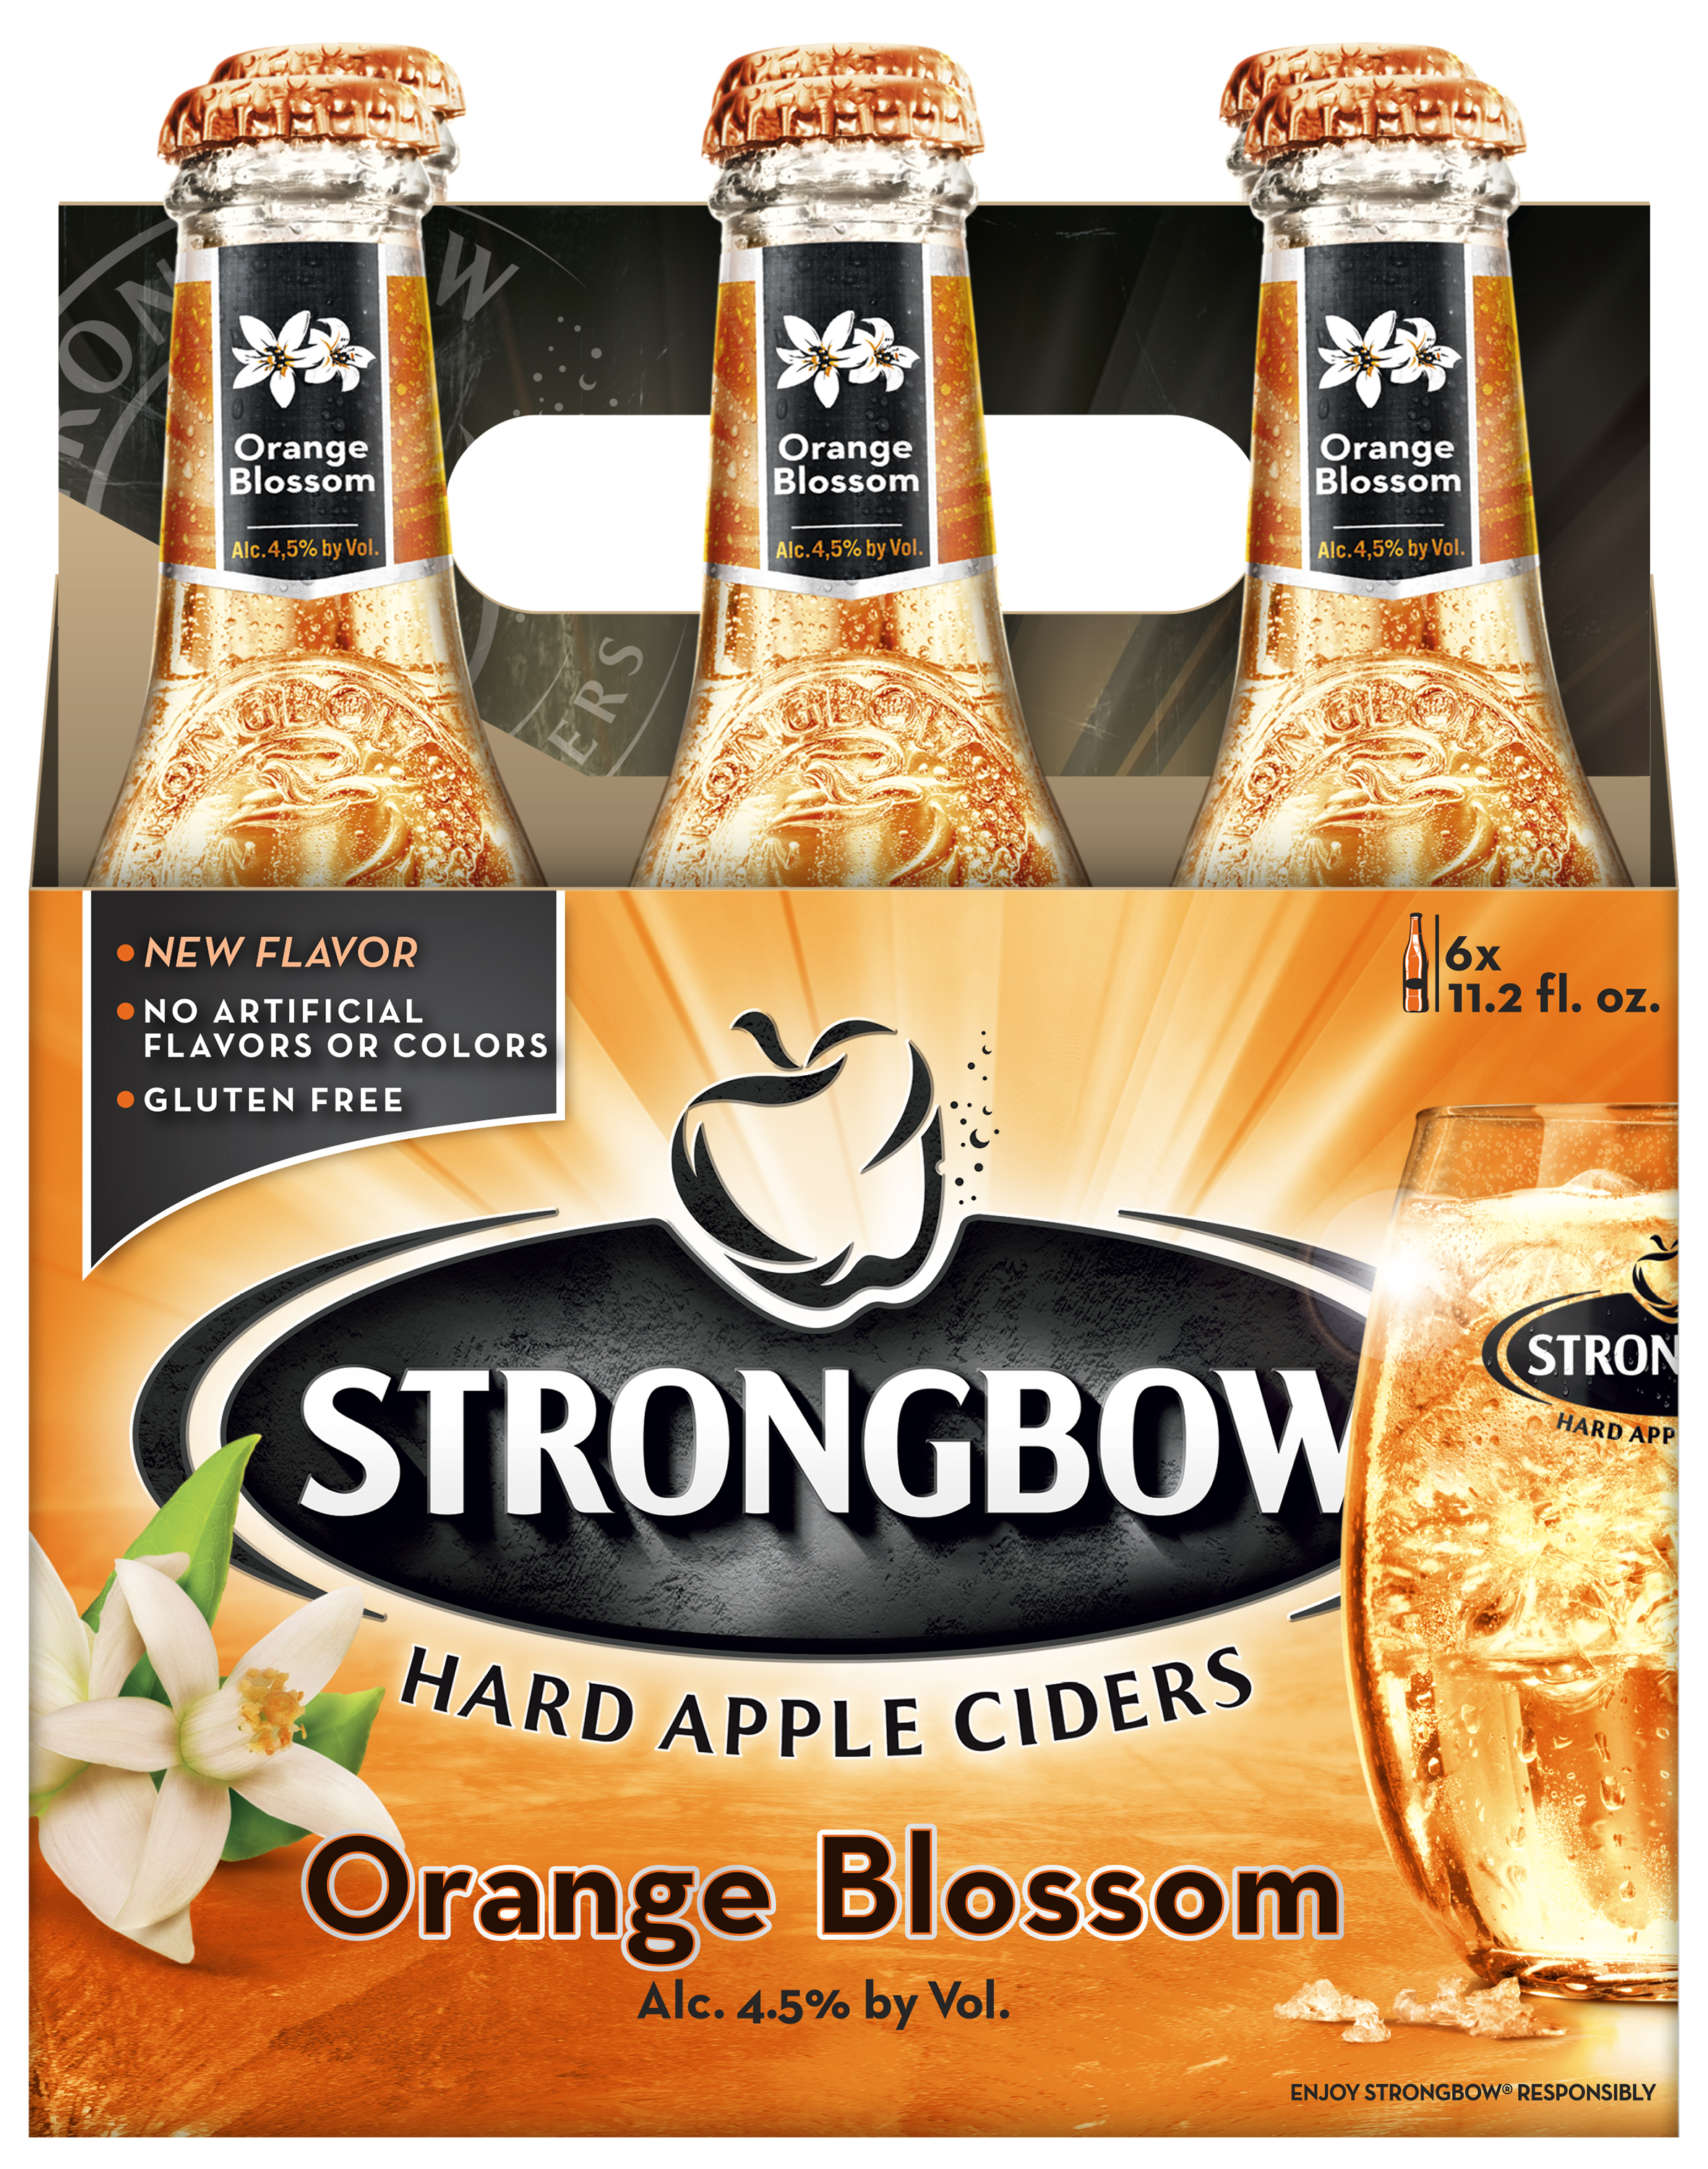 Strongbow Hard Apple Cider Introduces New Flavor